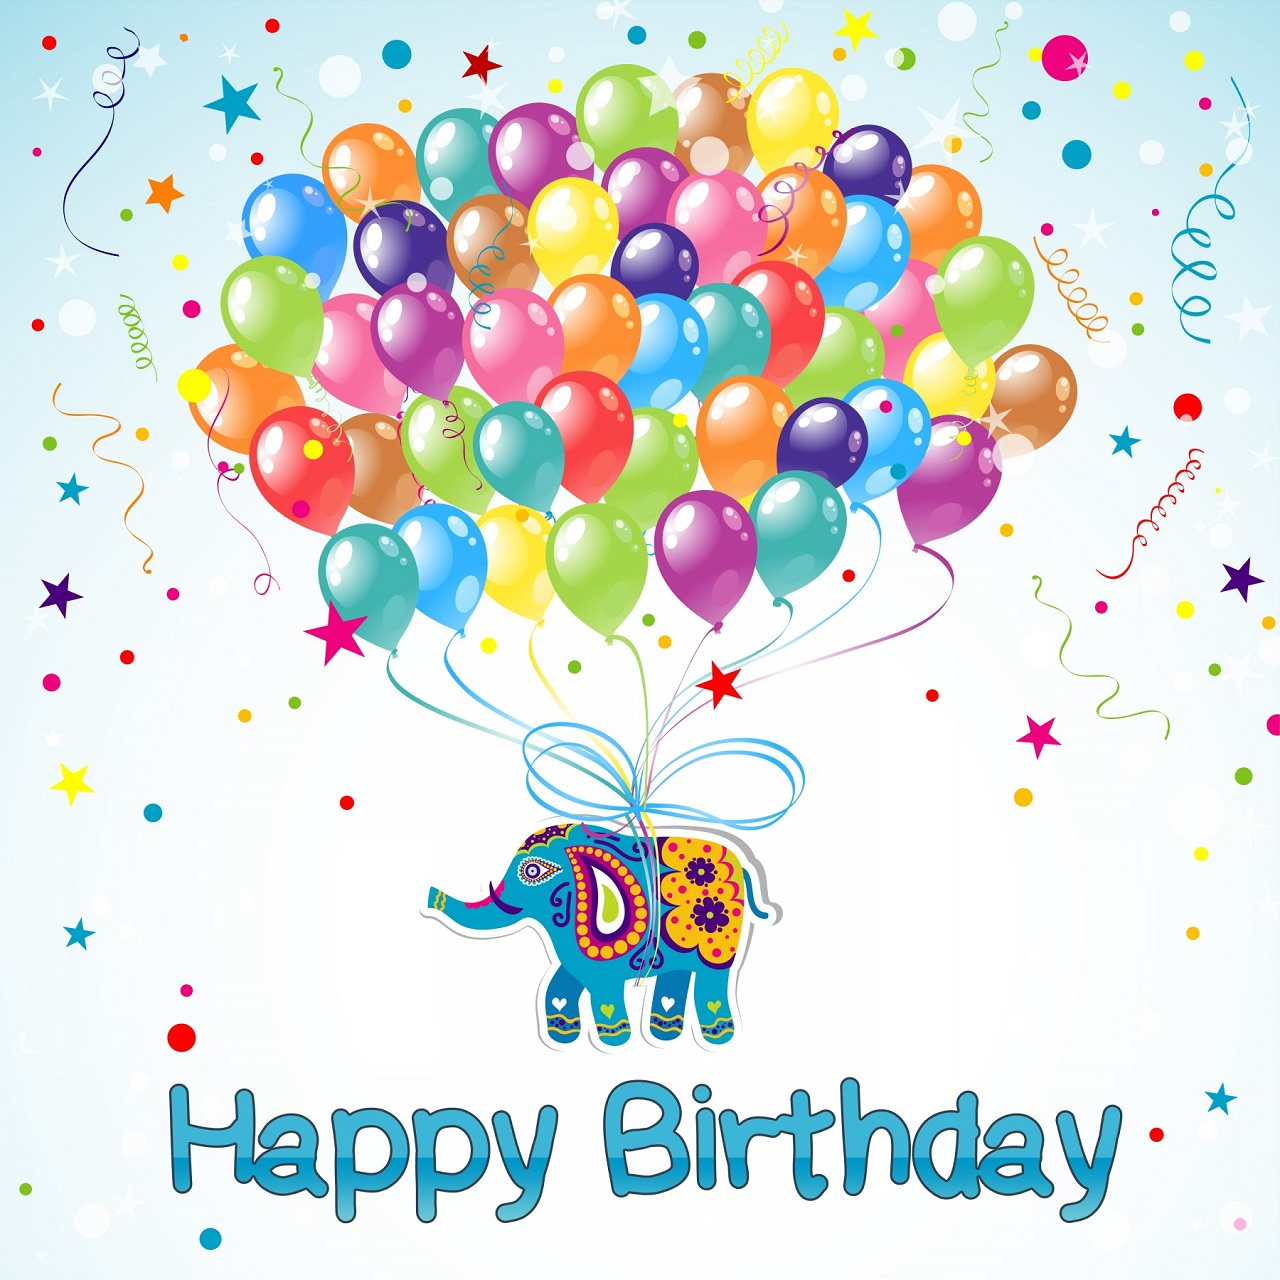 Best Free Happy Birthday Greeting Cards Wishes Cards – Happy Birthday Cards for a Friend